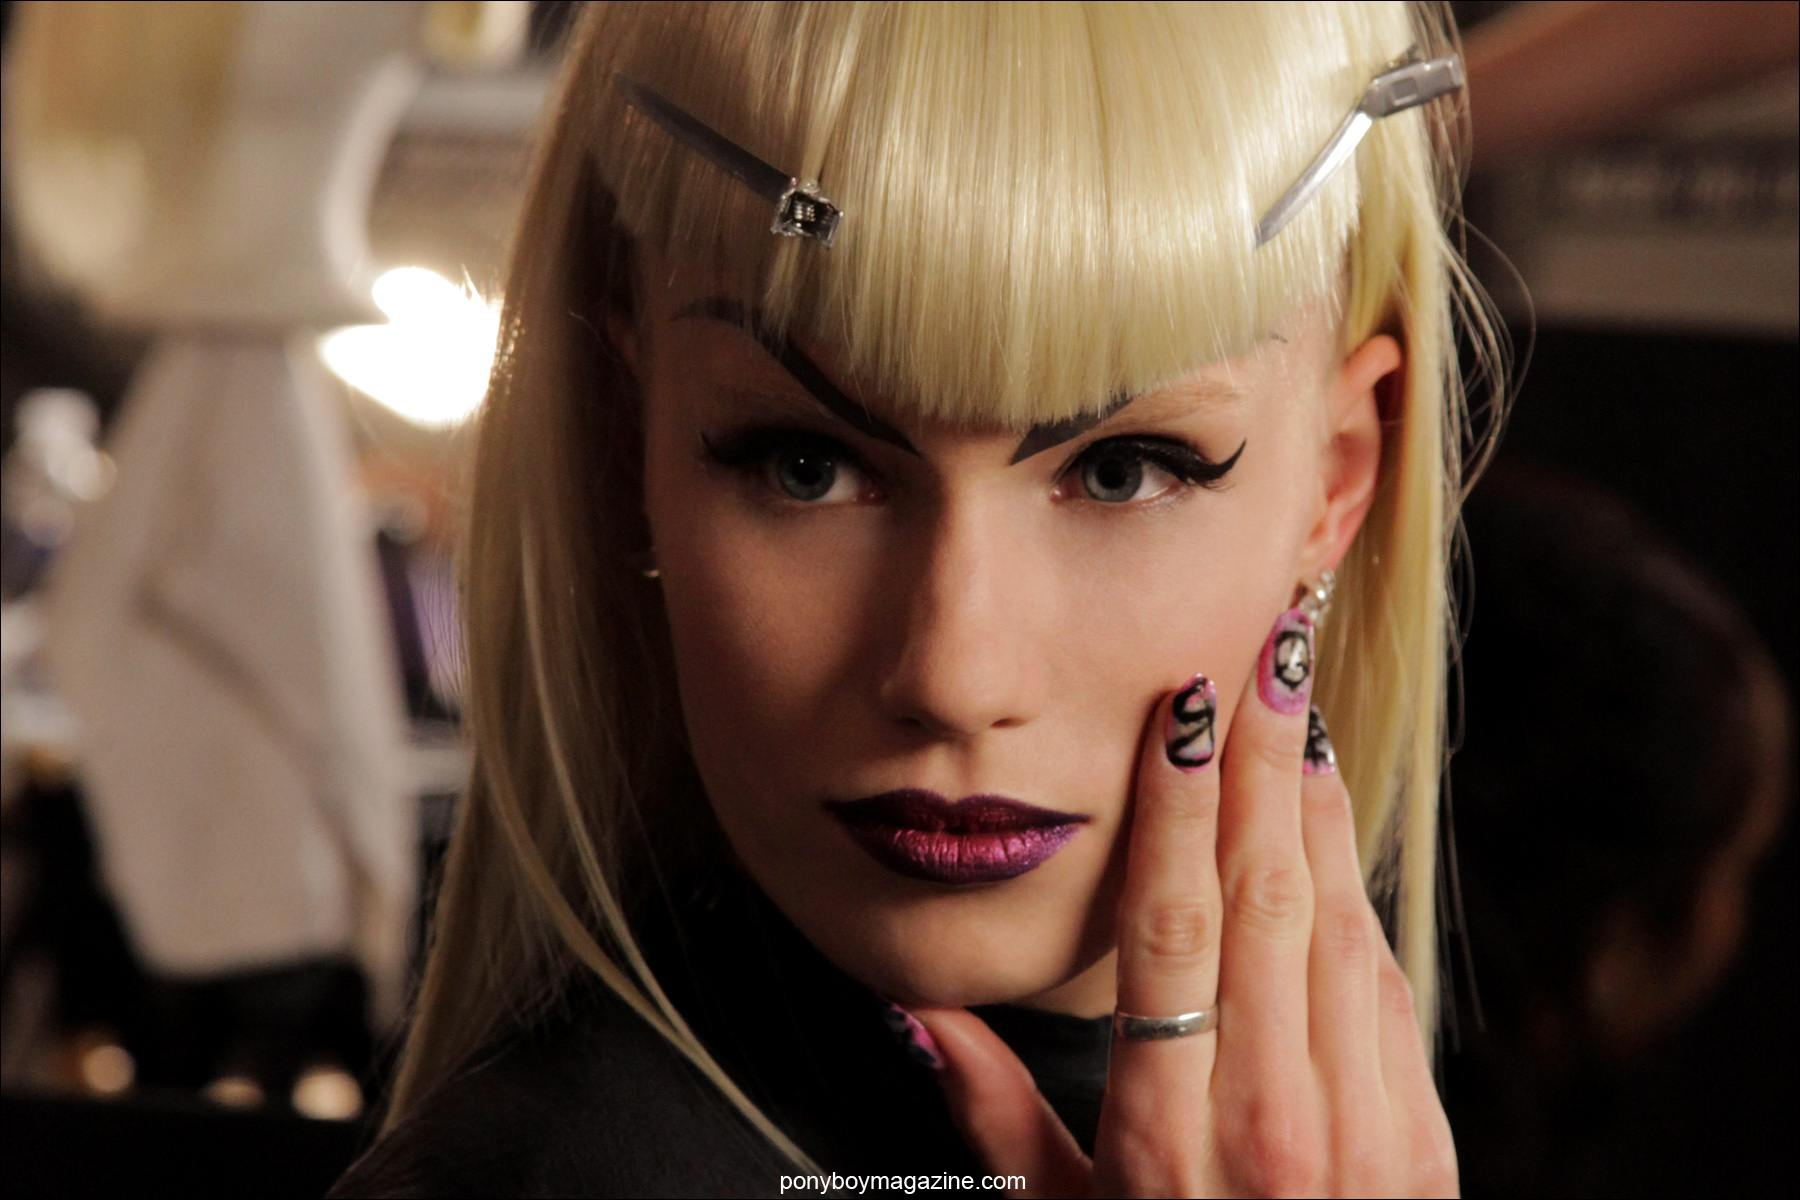 A model shows off her elaborately painted nails at The Blonds A/W 2014 fashion show. Photograph taken for Ponyboy Magazine by Alexander Thompson.